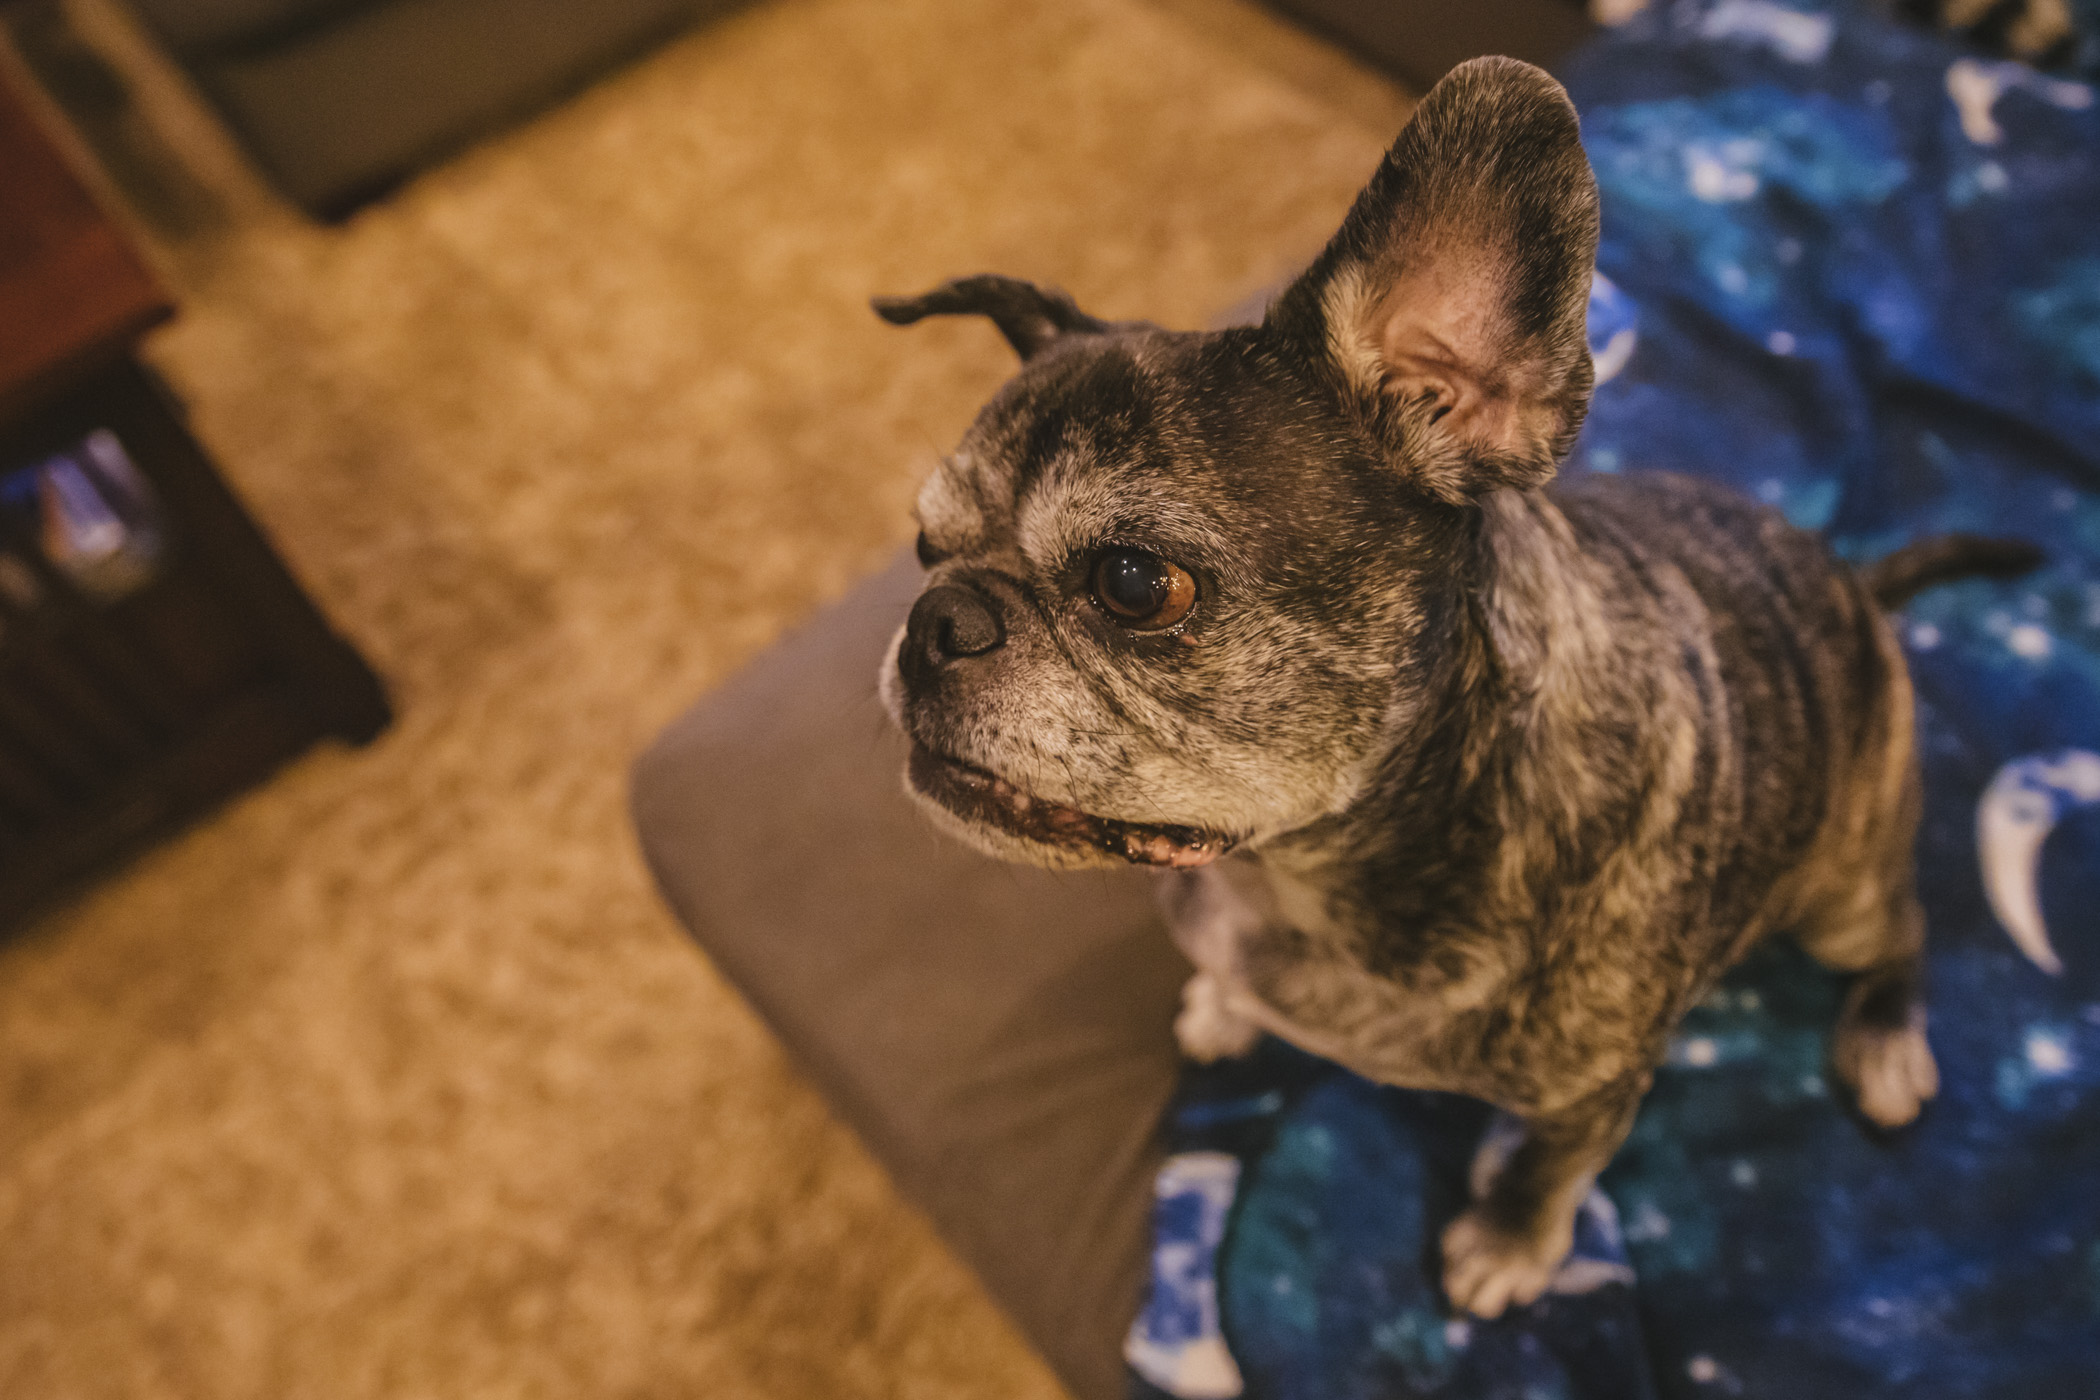 Welcome to the first #RUFFinedSpotlight of 2020! This is Captain Rhett Butler, a Pug and French Bulldog Mix. He is 12 years old and is a happy-go-lucky rescue from Georgia. He found his forever home where he enjoys long walks in nature, belly rubs and road trips with his family. He likes all foods, people, and animals! He dislikes not being pet constantly by his humans.{ }The Seattle RUFFined Spotlight is a weekly profile of local pets living and loving life in the PNW. If you or someone you know has a pet you'd like featured, email us at hello@seattlerefined.com or tag #SeattleRUFFined and your furbaby could be the next spotlighted! (Image: Sunita Martini / Seattle Refined).